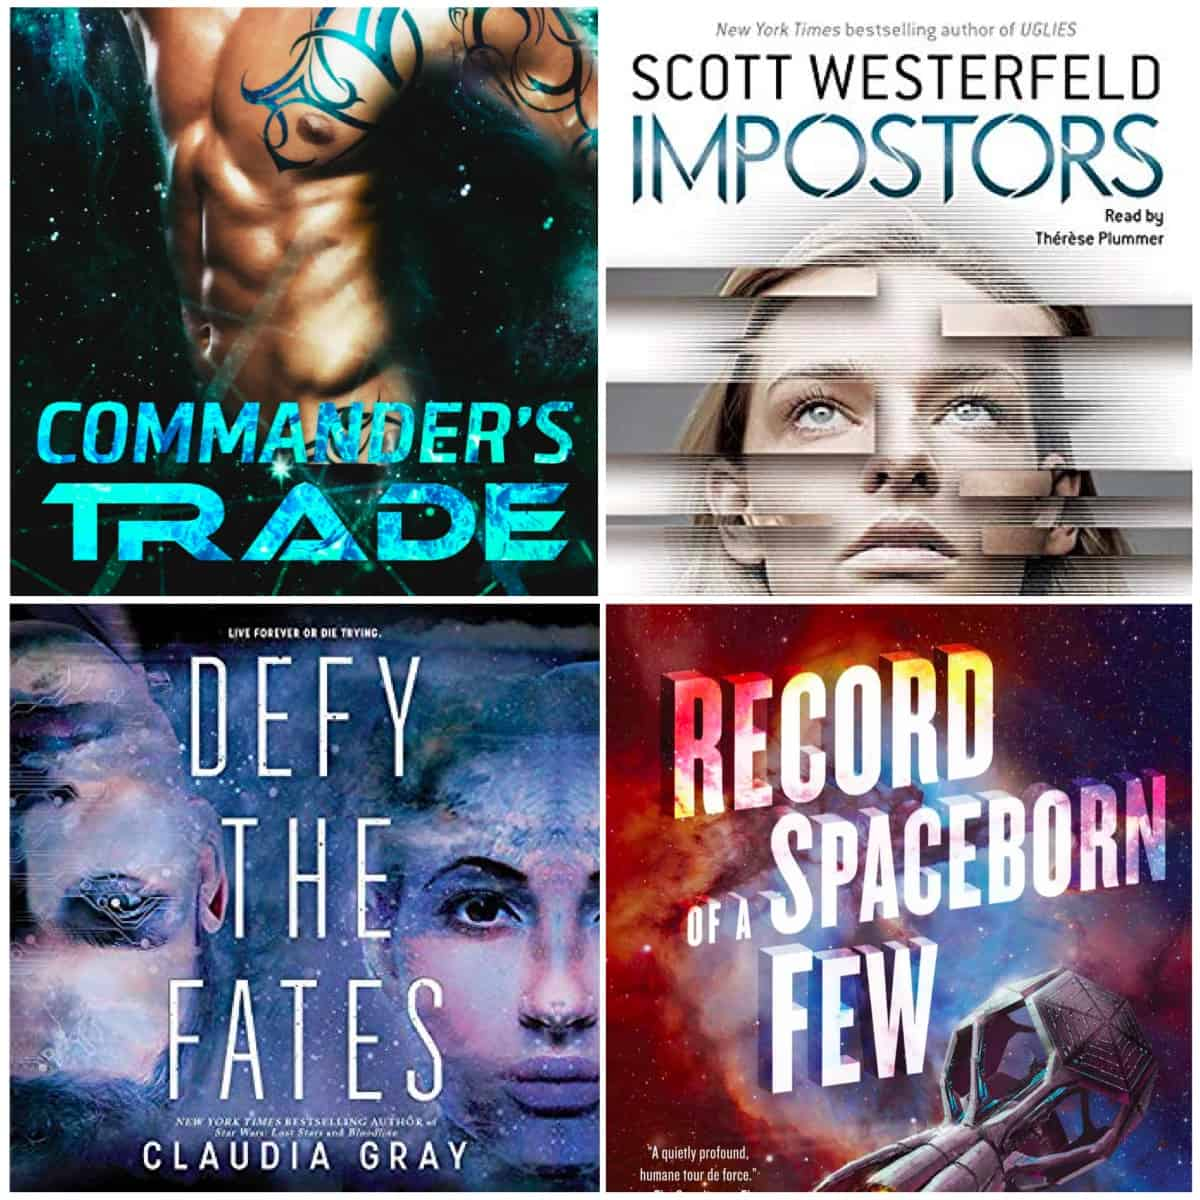 Lots of great scifi books this time from Diana Logan, Becky Chambers, Scott Westerfeld, and Claudia Gray.